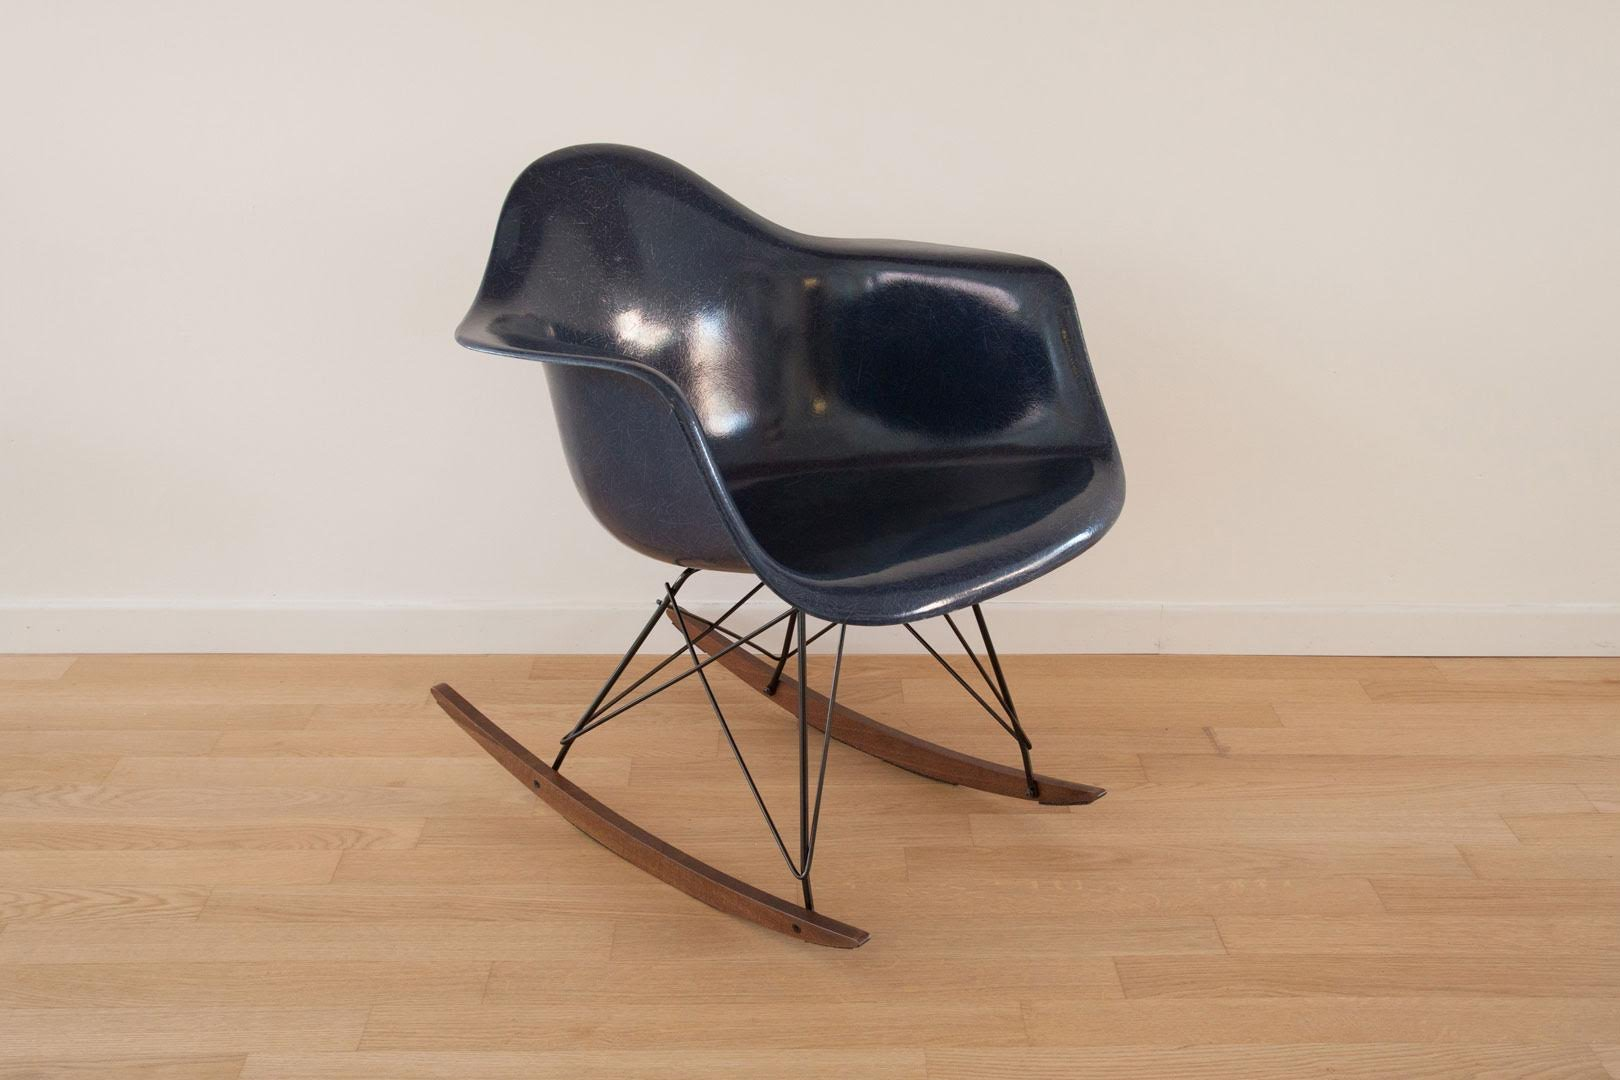 vintage shell rocking chair by charles ray eames for. Black Bedroom Furniture Sets. Home Design Ideas